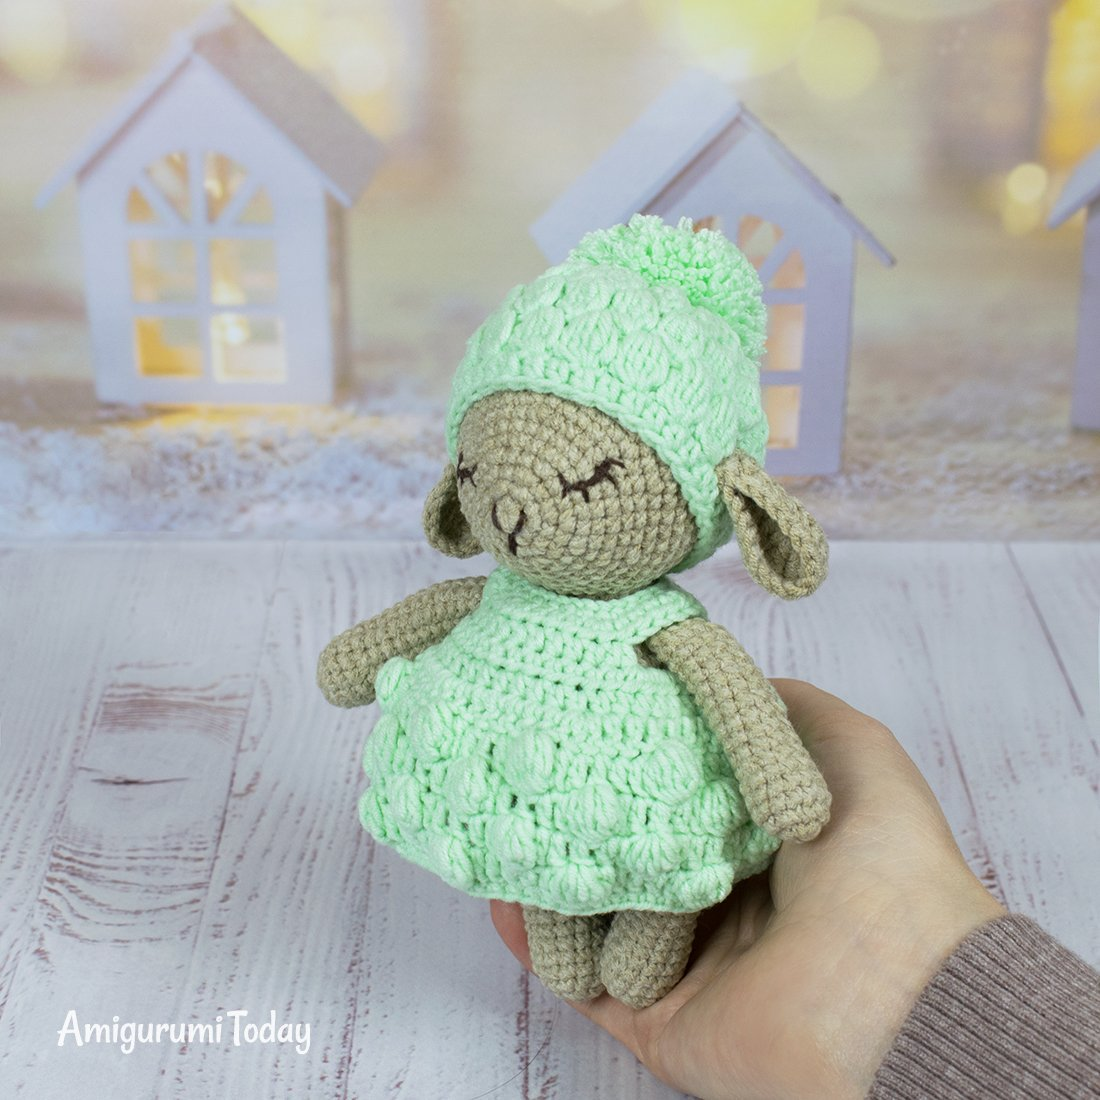 Meet amazing Cuddle Me Toy team made by... - Amigurumi Today ... | 1100x1100